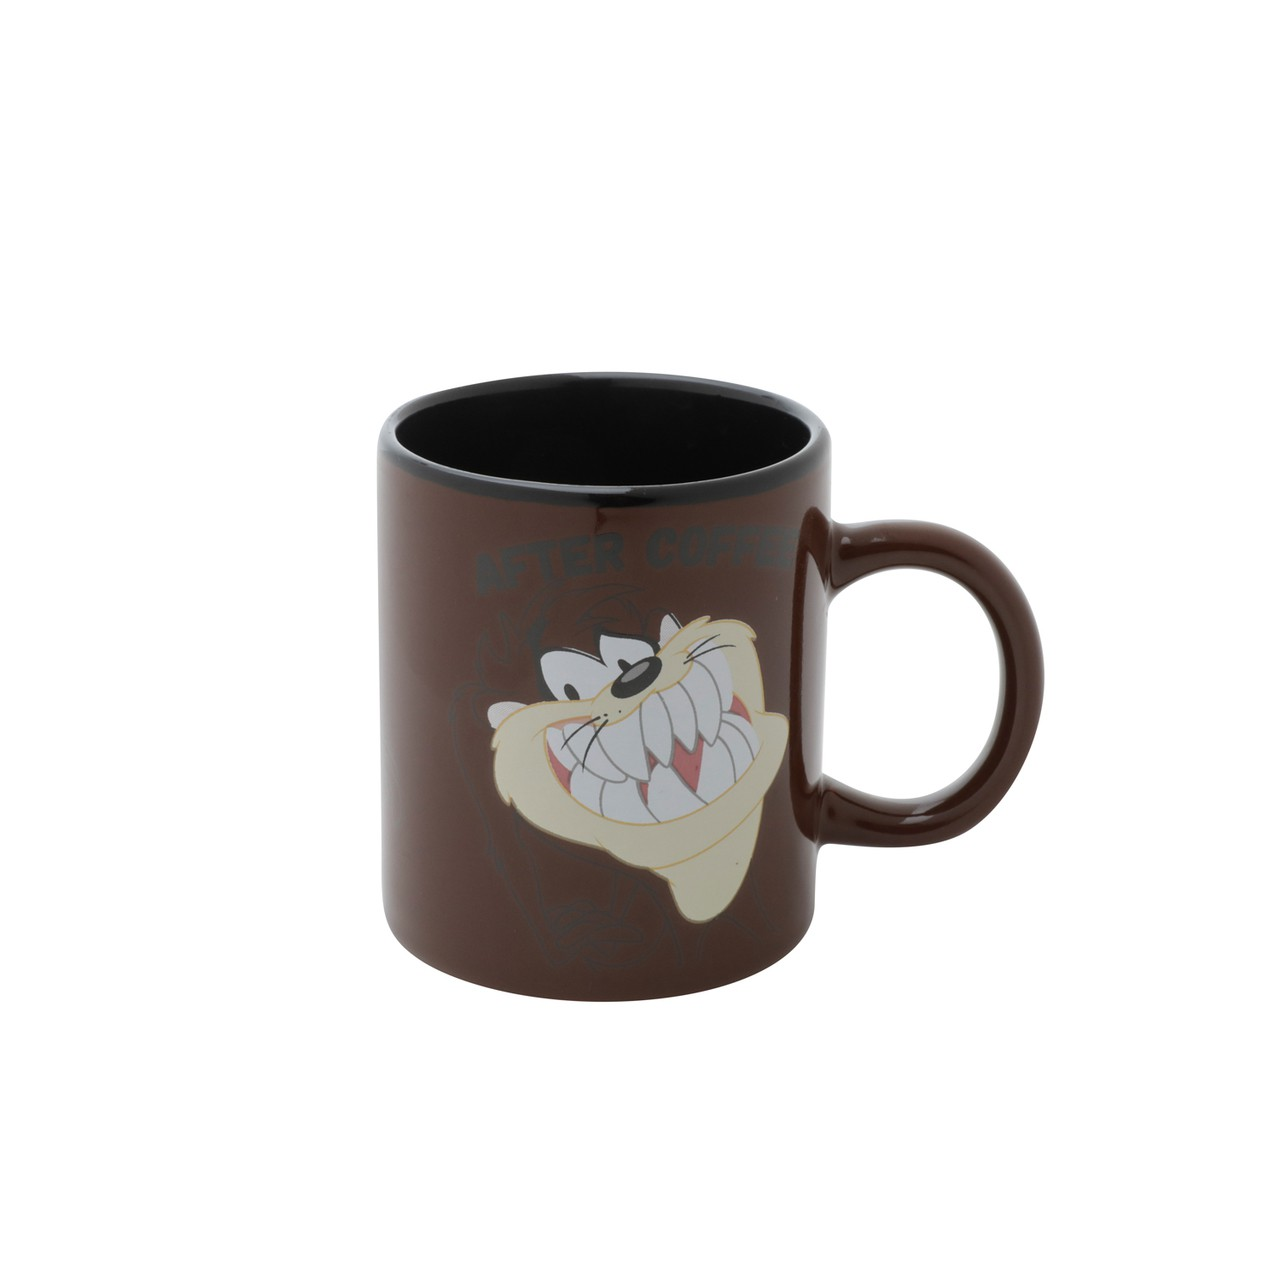 Mini Caneca de Porcelana: Taz Looney Tunes - Urban